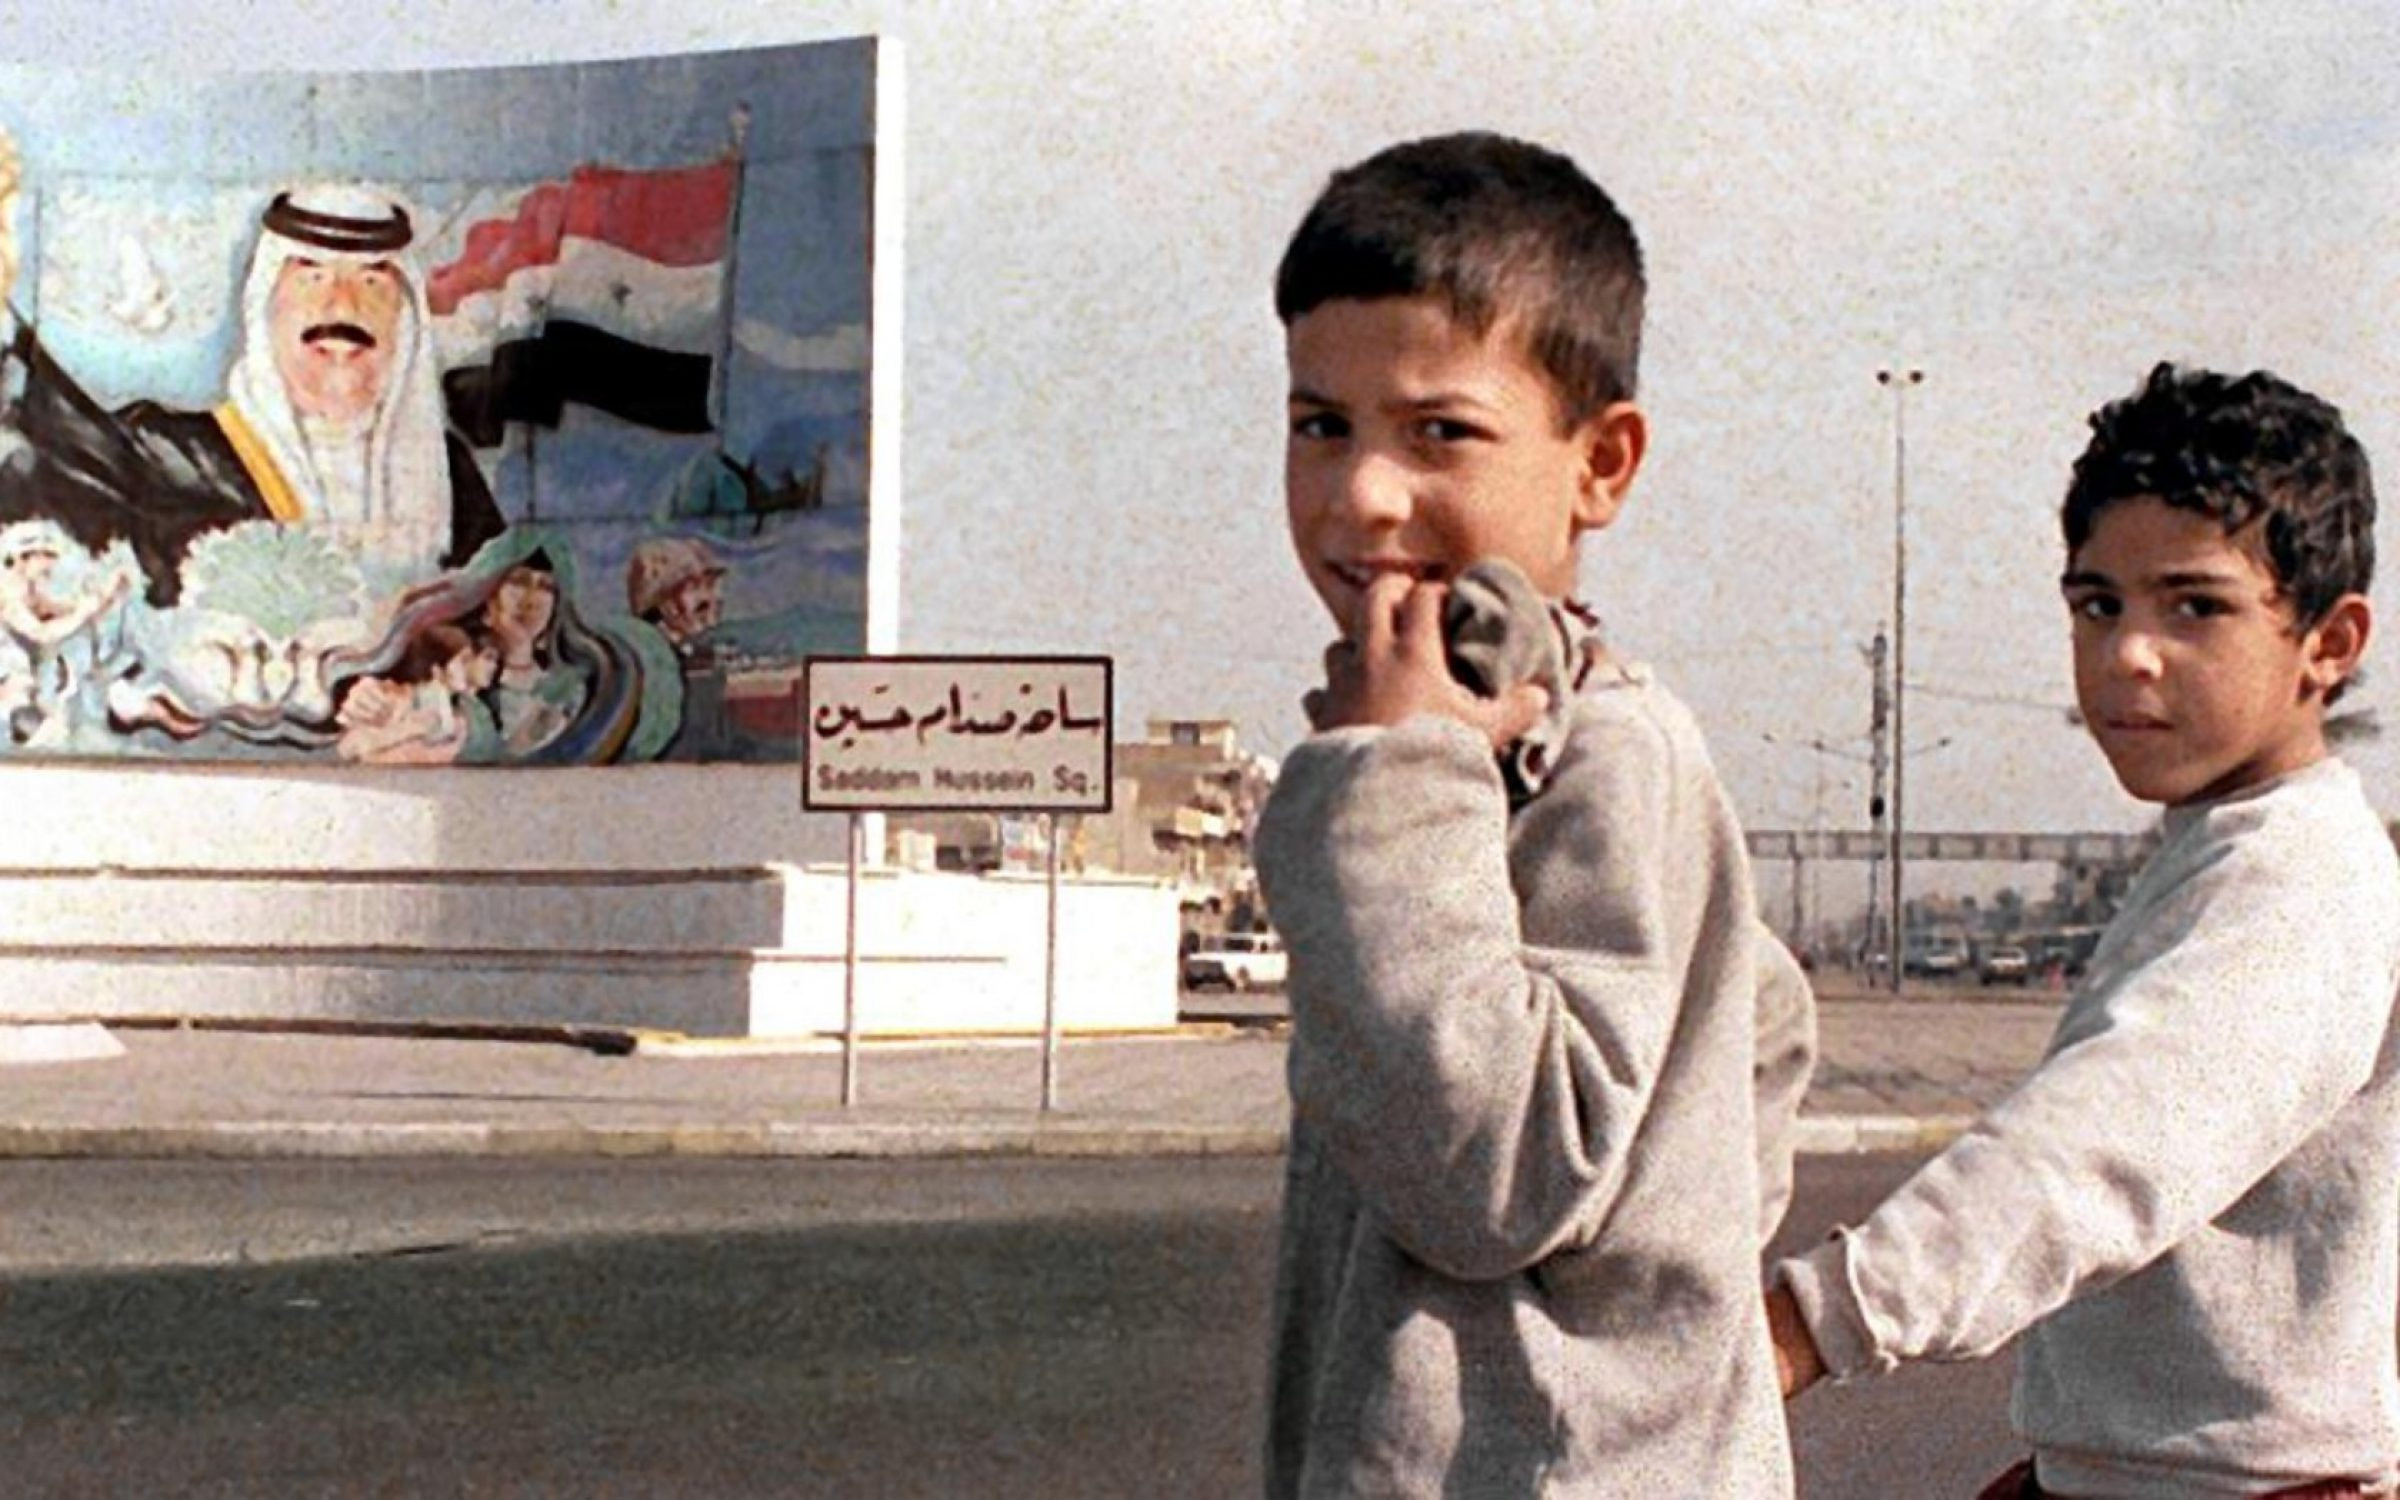 Iraqi children in front of a mural of Saddam Hussein, Baghdad, 1999. Credit: KARIM SAHIB/AFP via Getty Images.